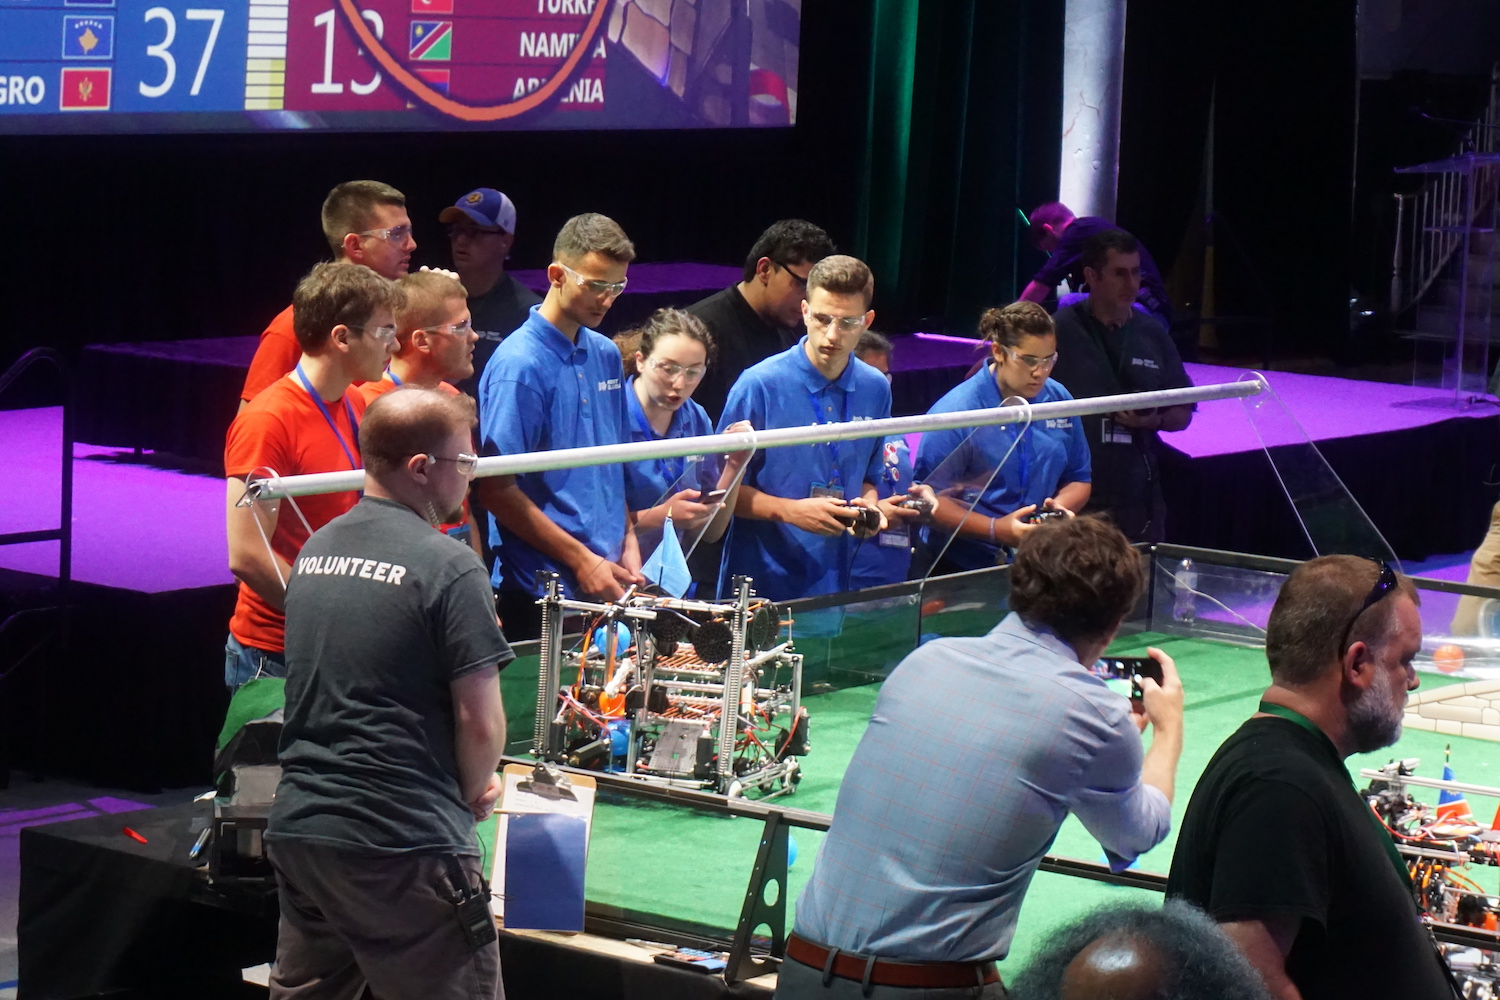 Two teams crowd around the arena as their robots battle to 'purify' the playing field of the beach-ball contaminants. (Ritu Prasad/Medill News Service)